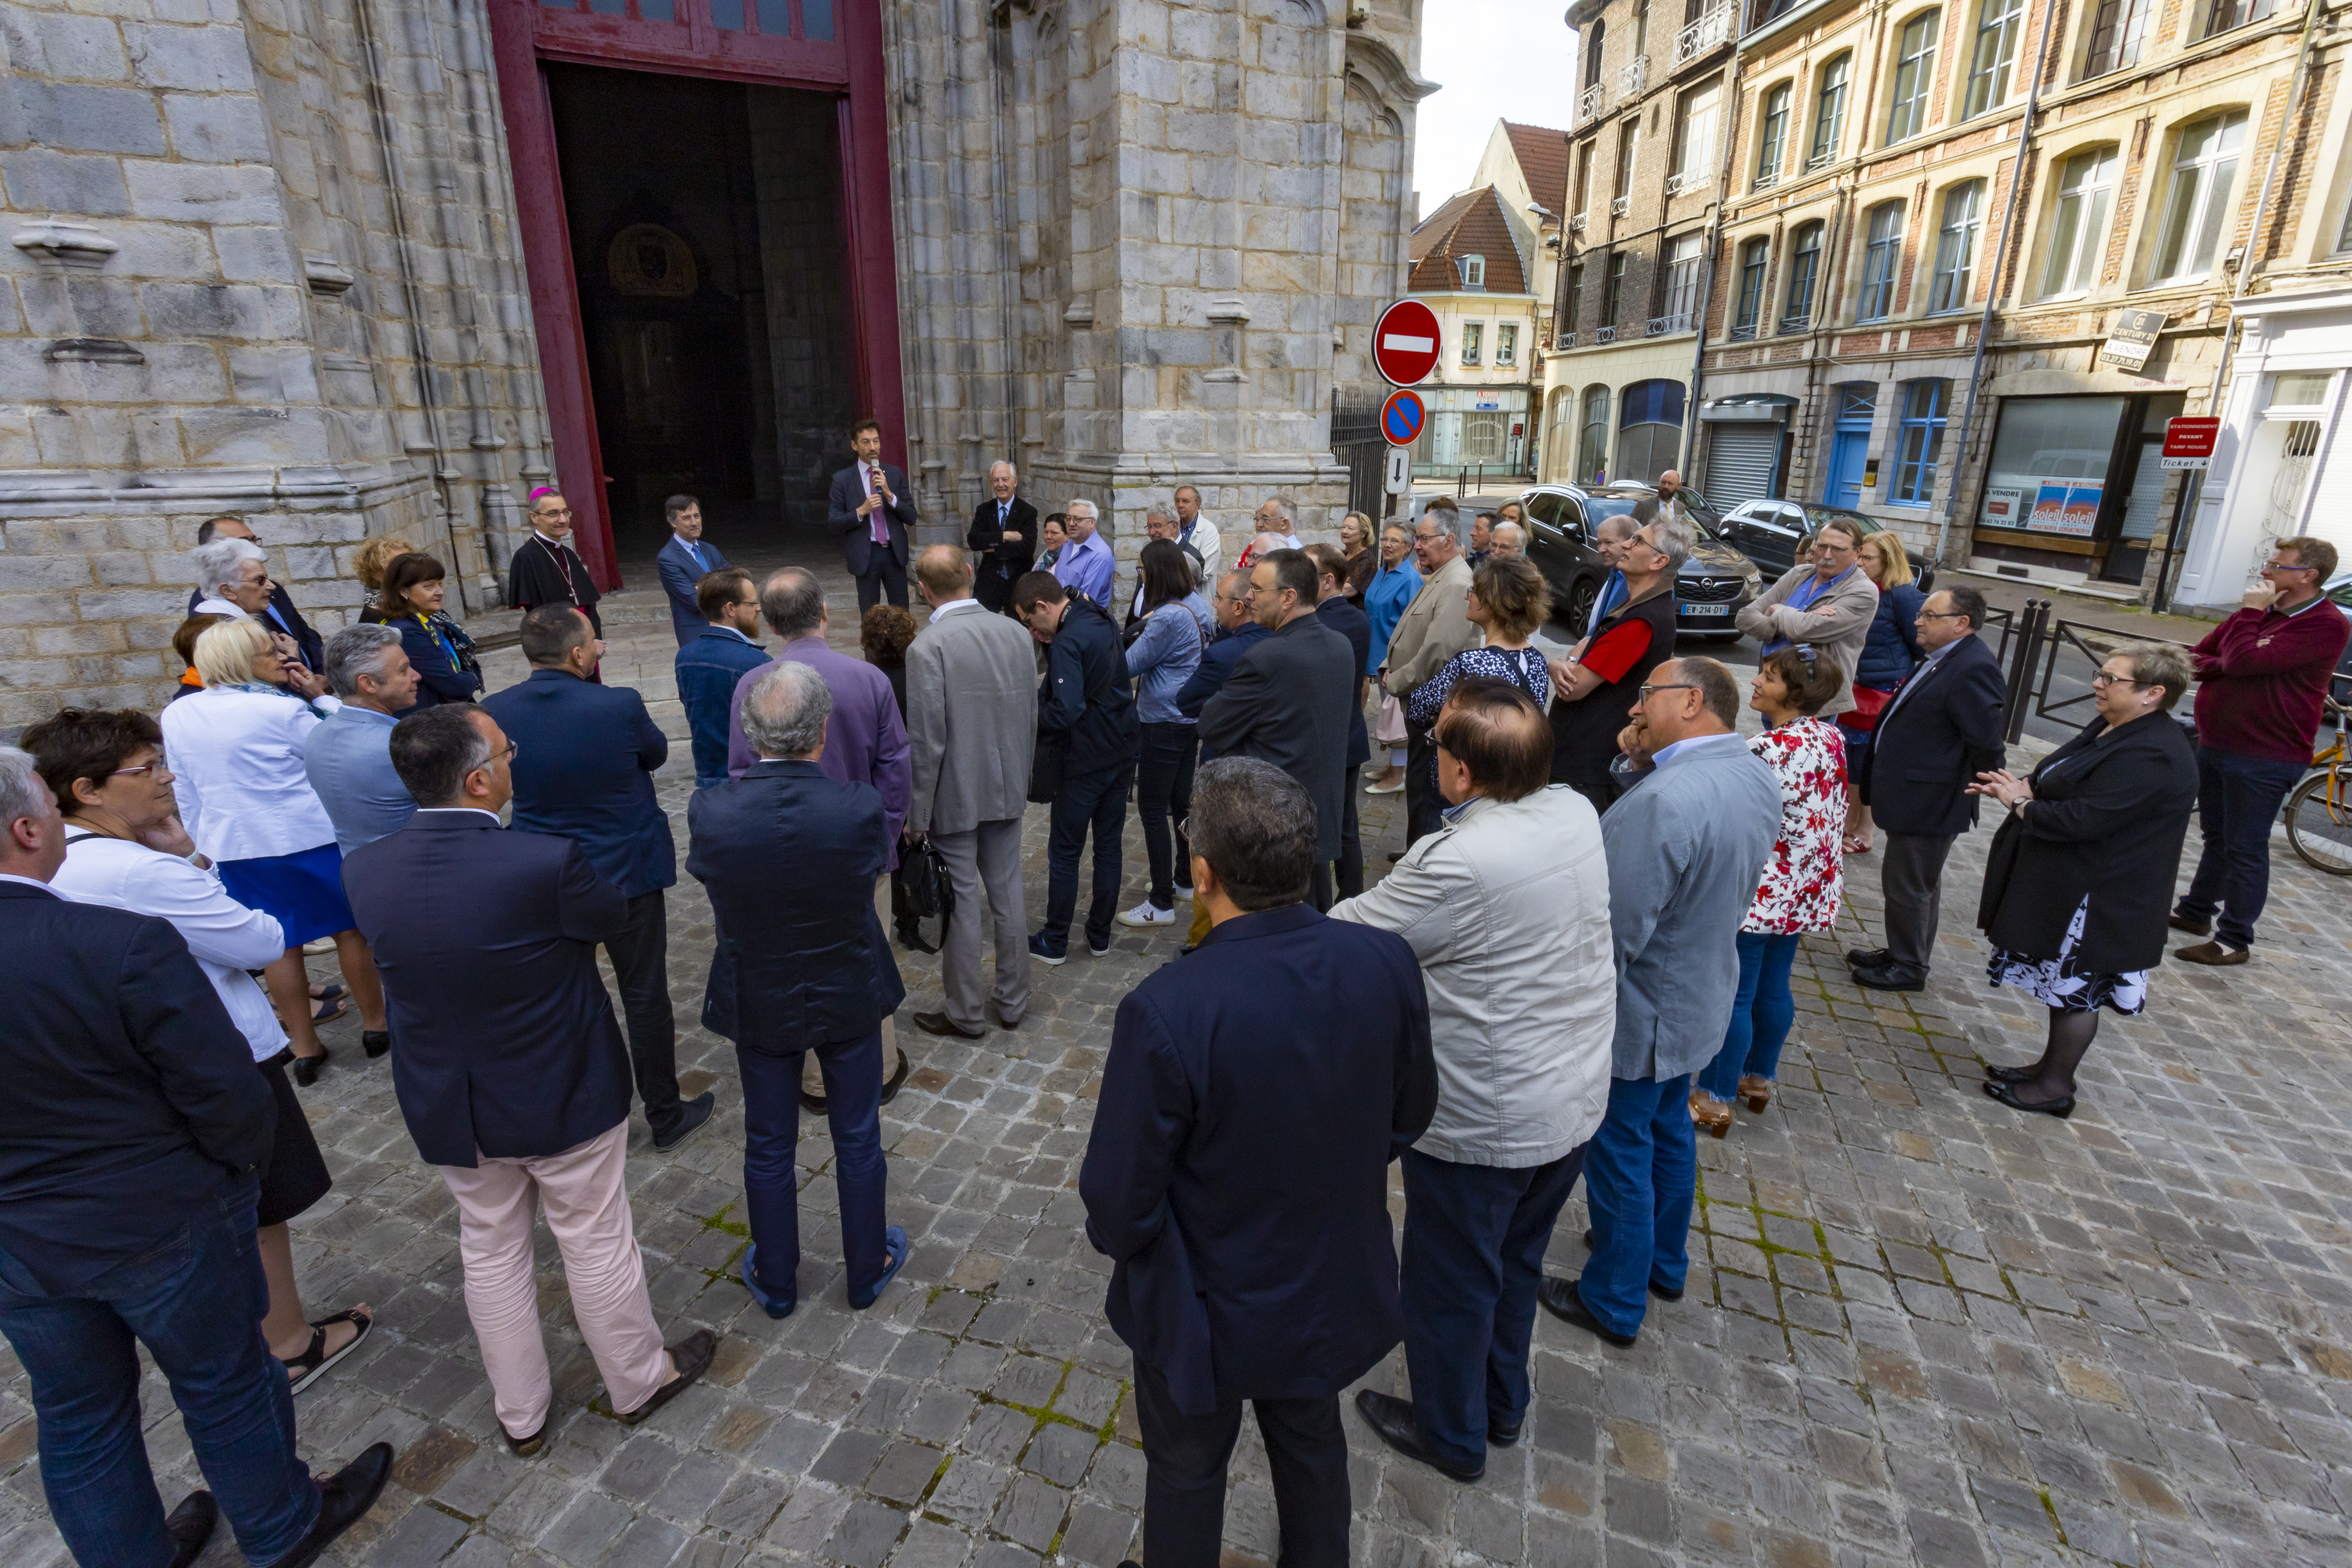 ADL 19-06-22 inauguration St Pierre 04